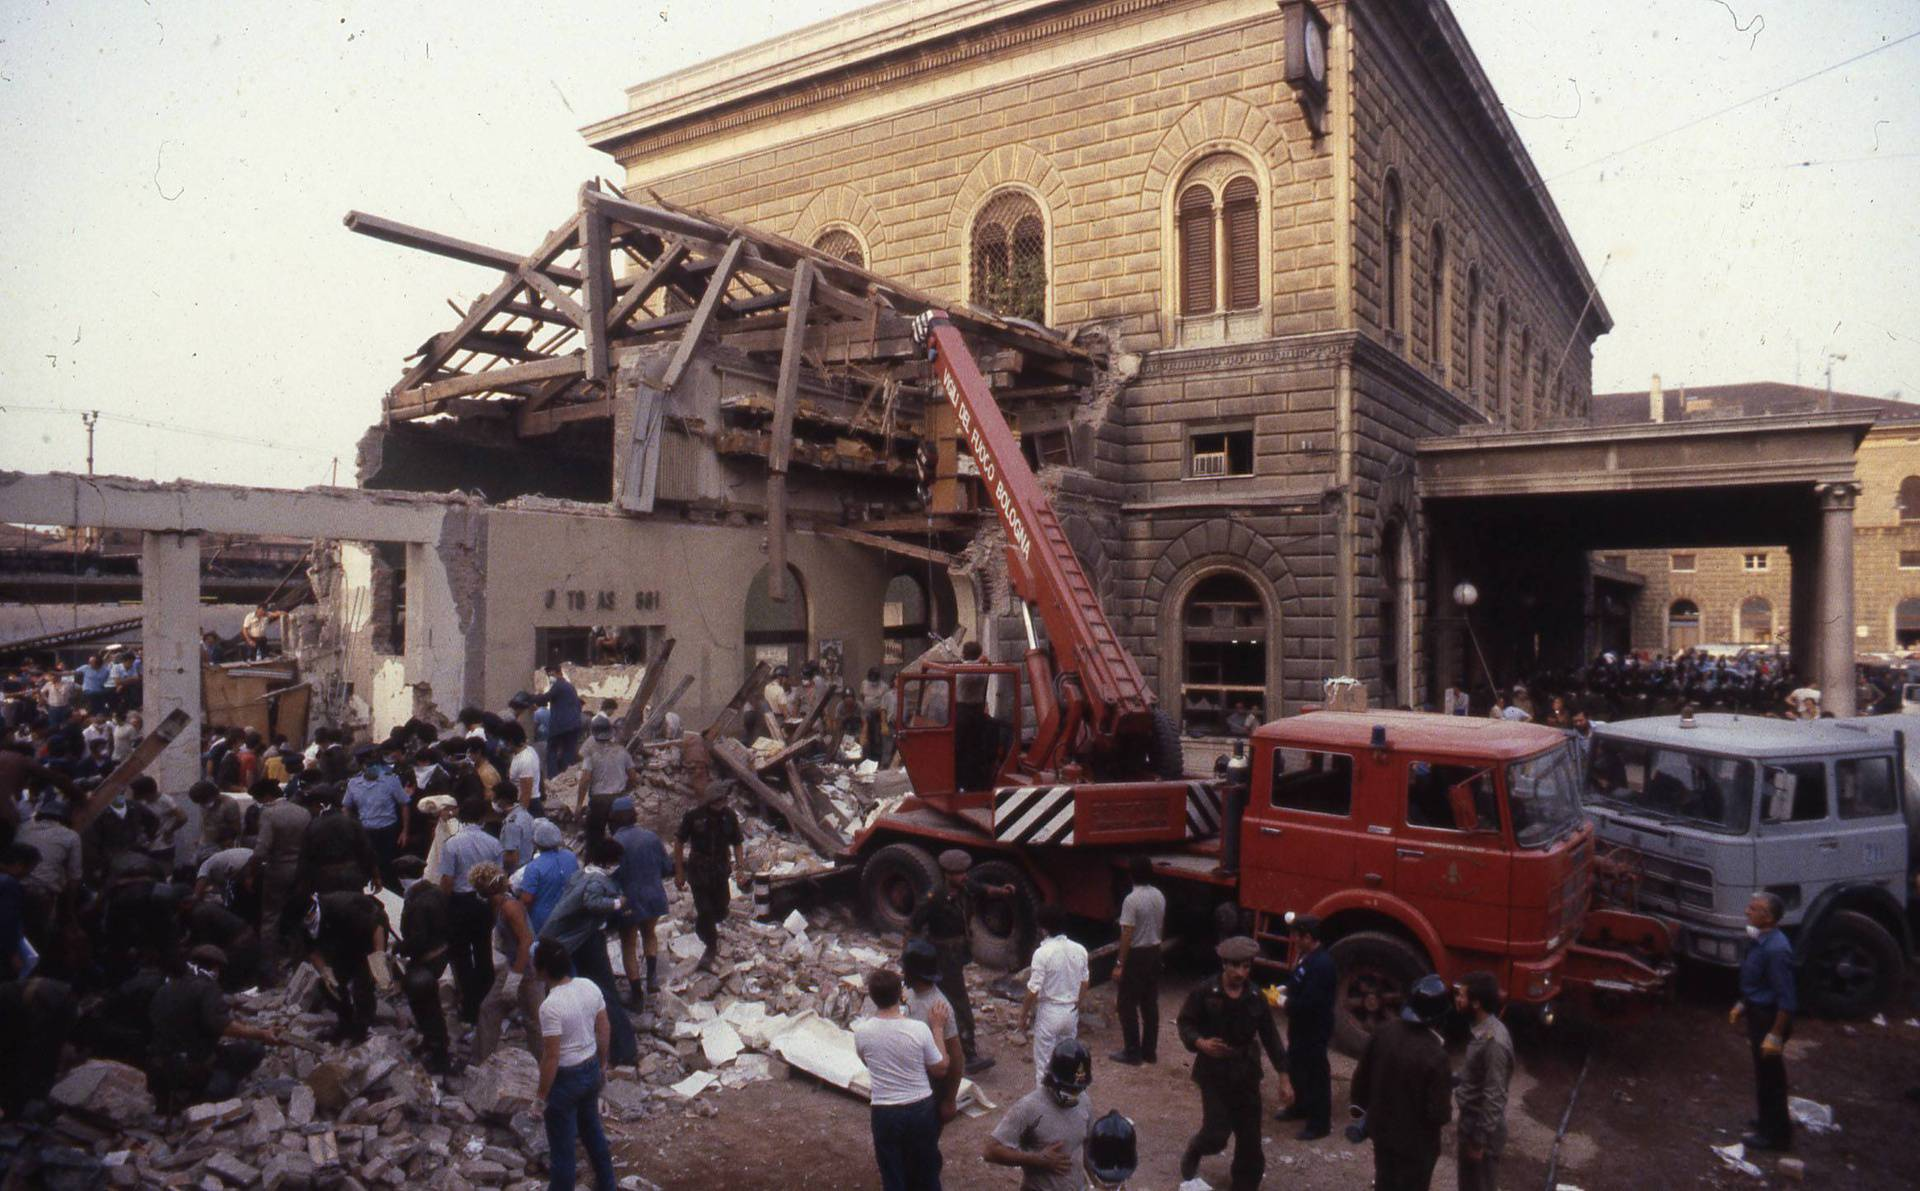 Italy, Bologna: 85 people killed in attack at railway station August 2, 1980